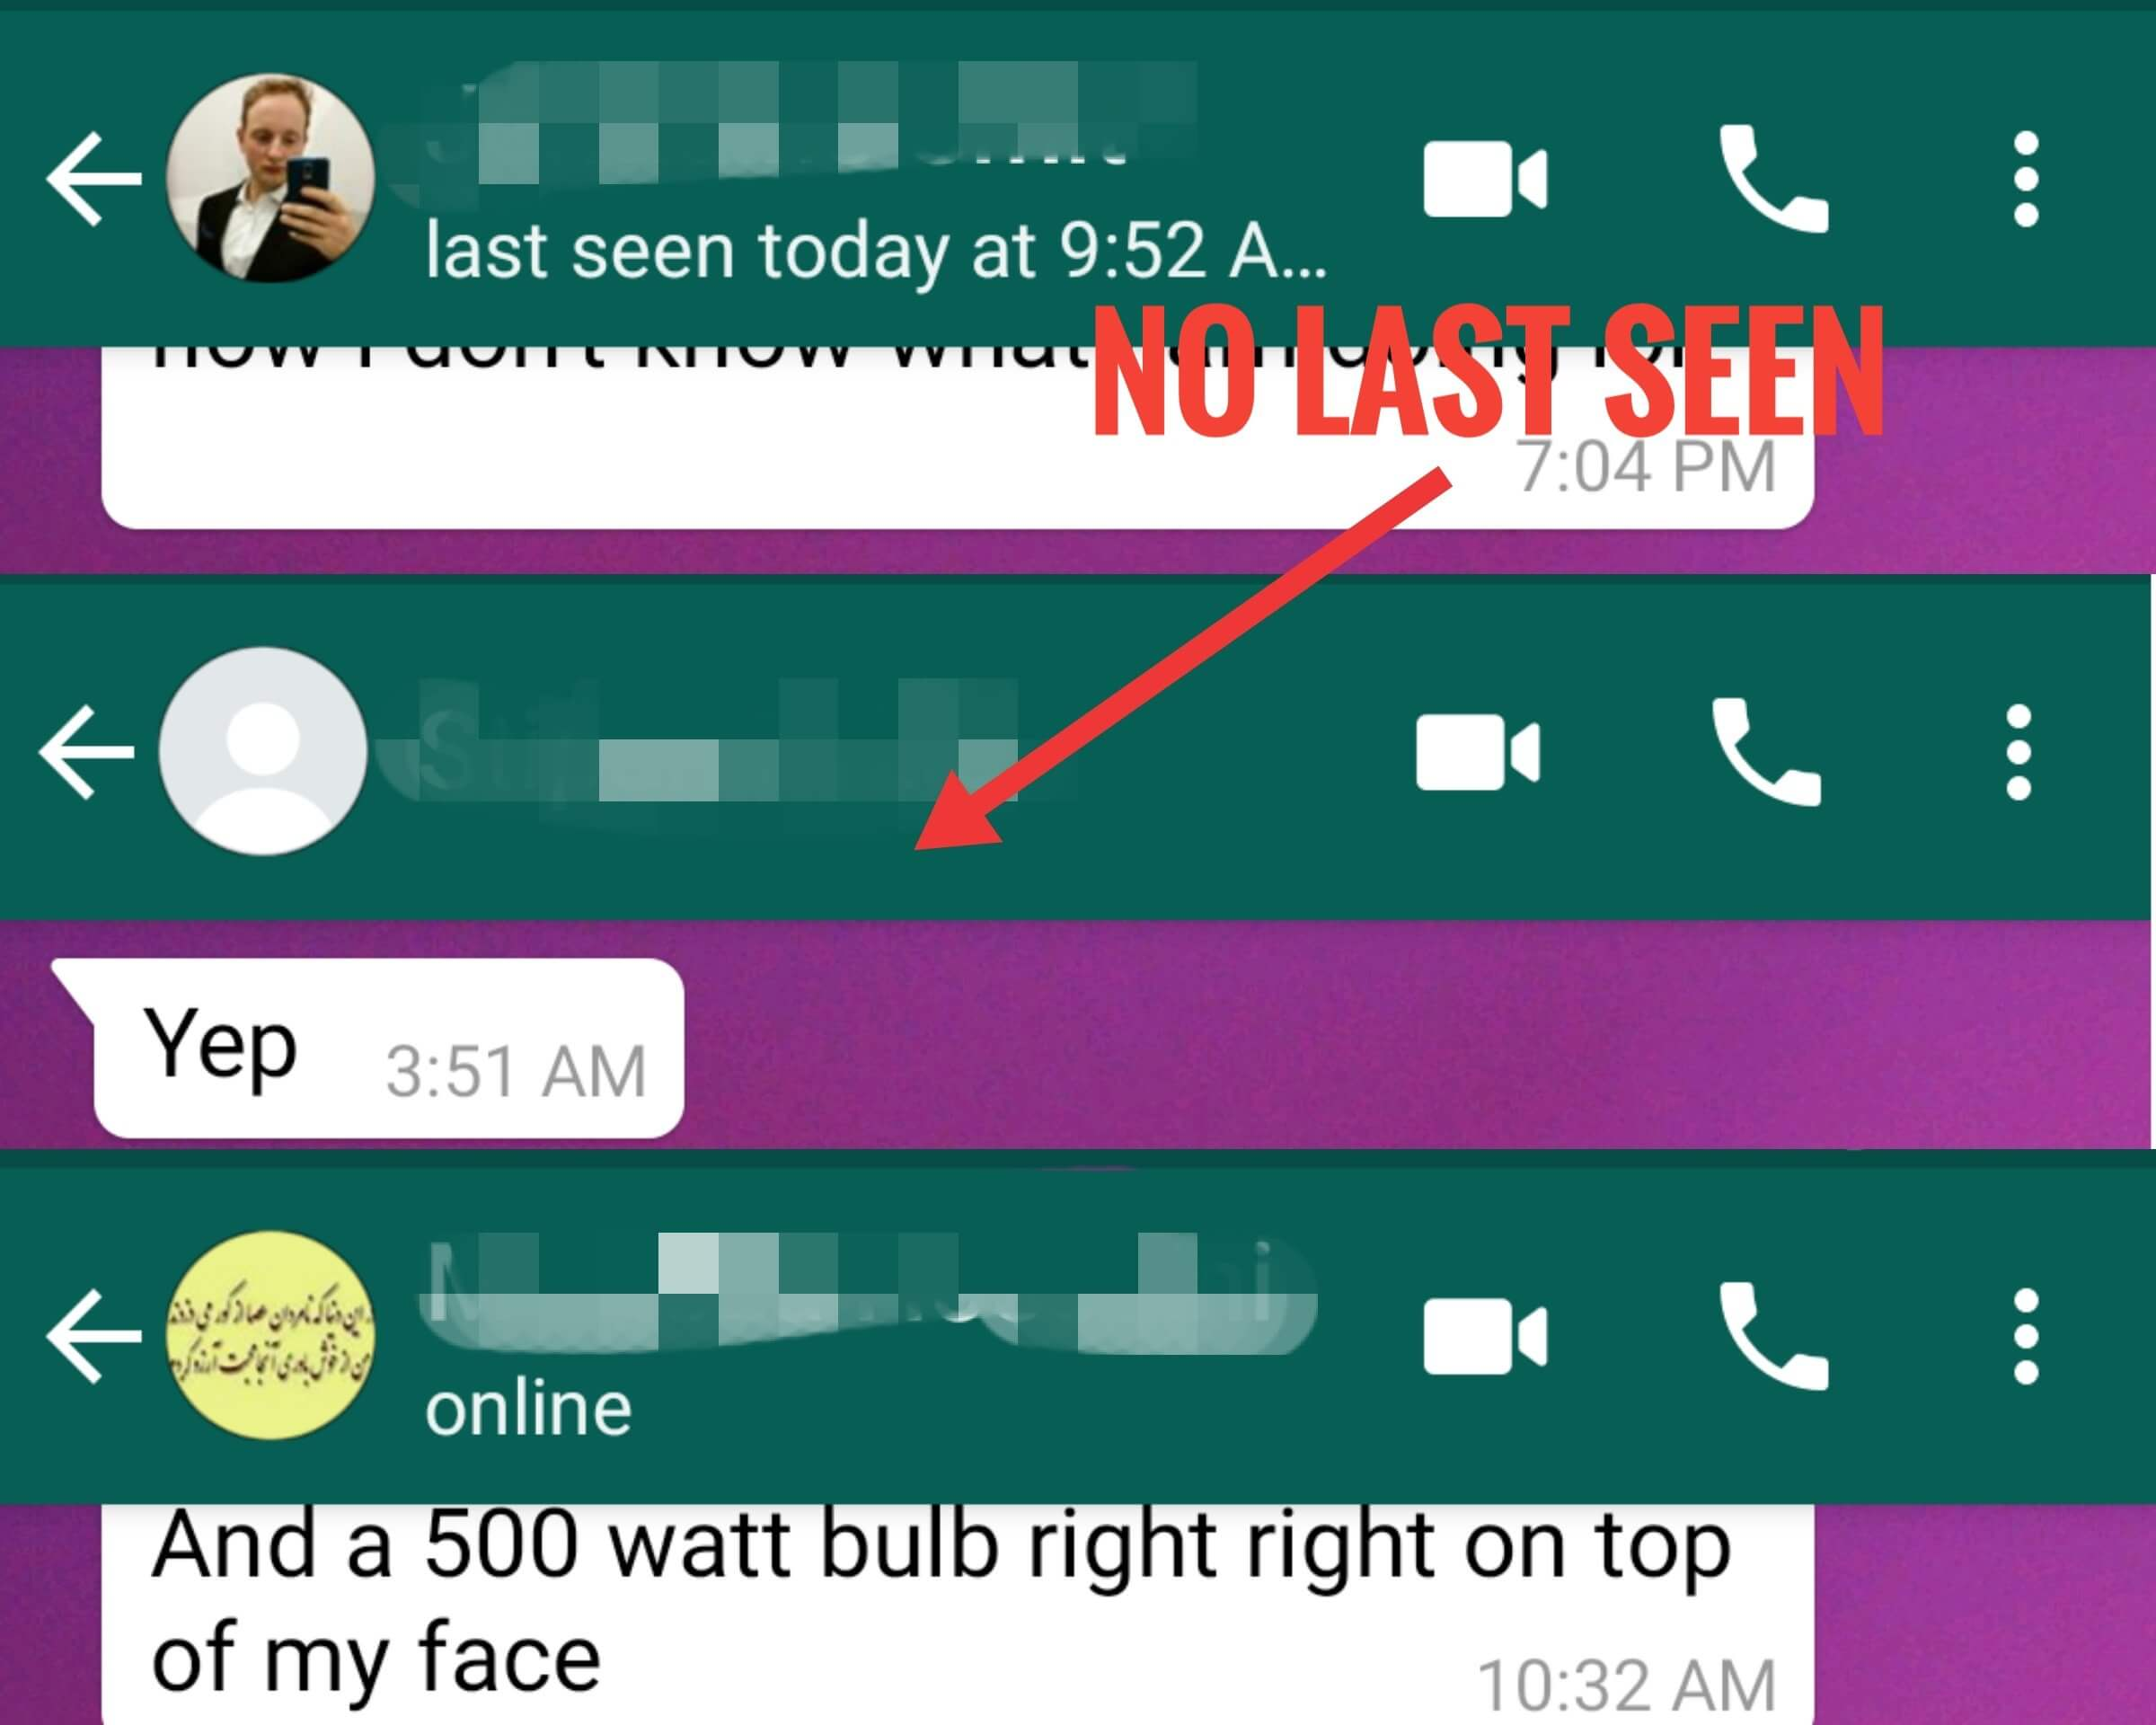 5 ways to tell if someone blocked you on WhatsApp?